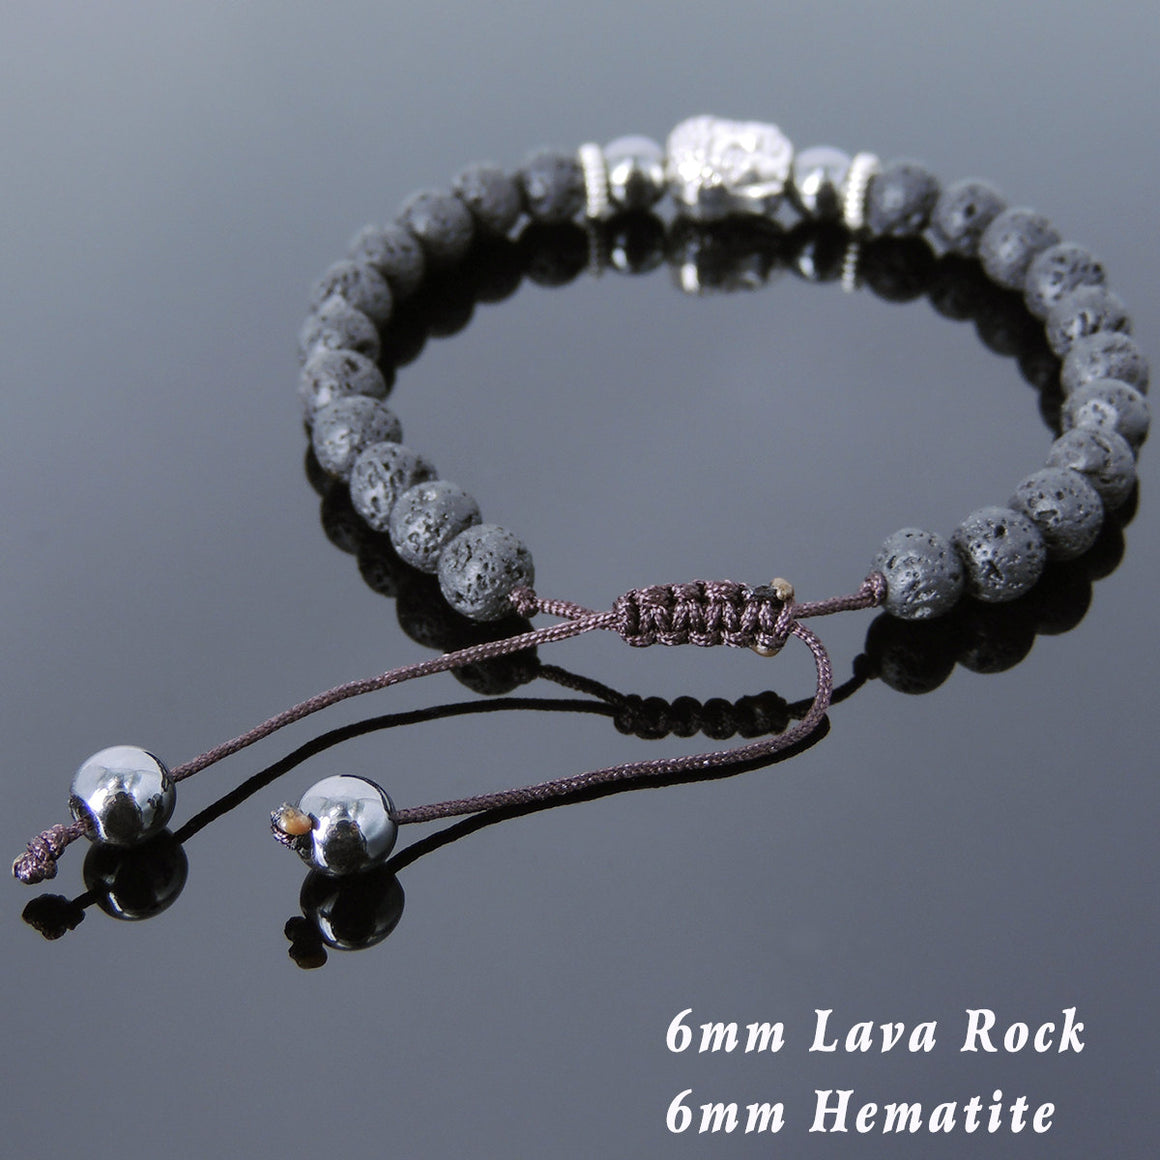 6mm Hematite & Lava Rock Adjustable Braided Stone Bracelet with Tibetan Silver Spacers & Guanyin Buddha Bead - Handmade by Gem & Silver TSB224